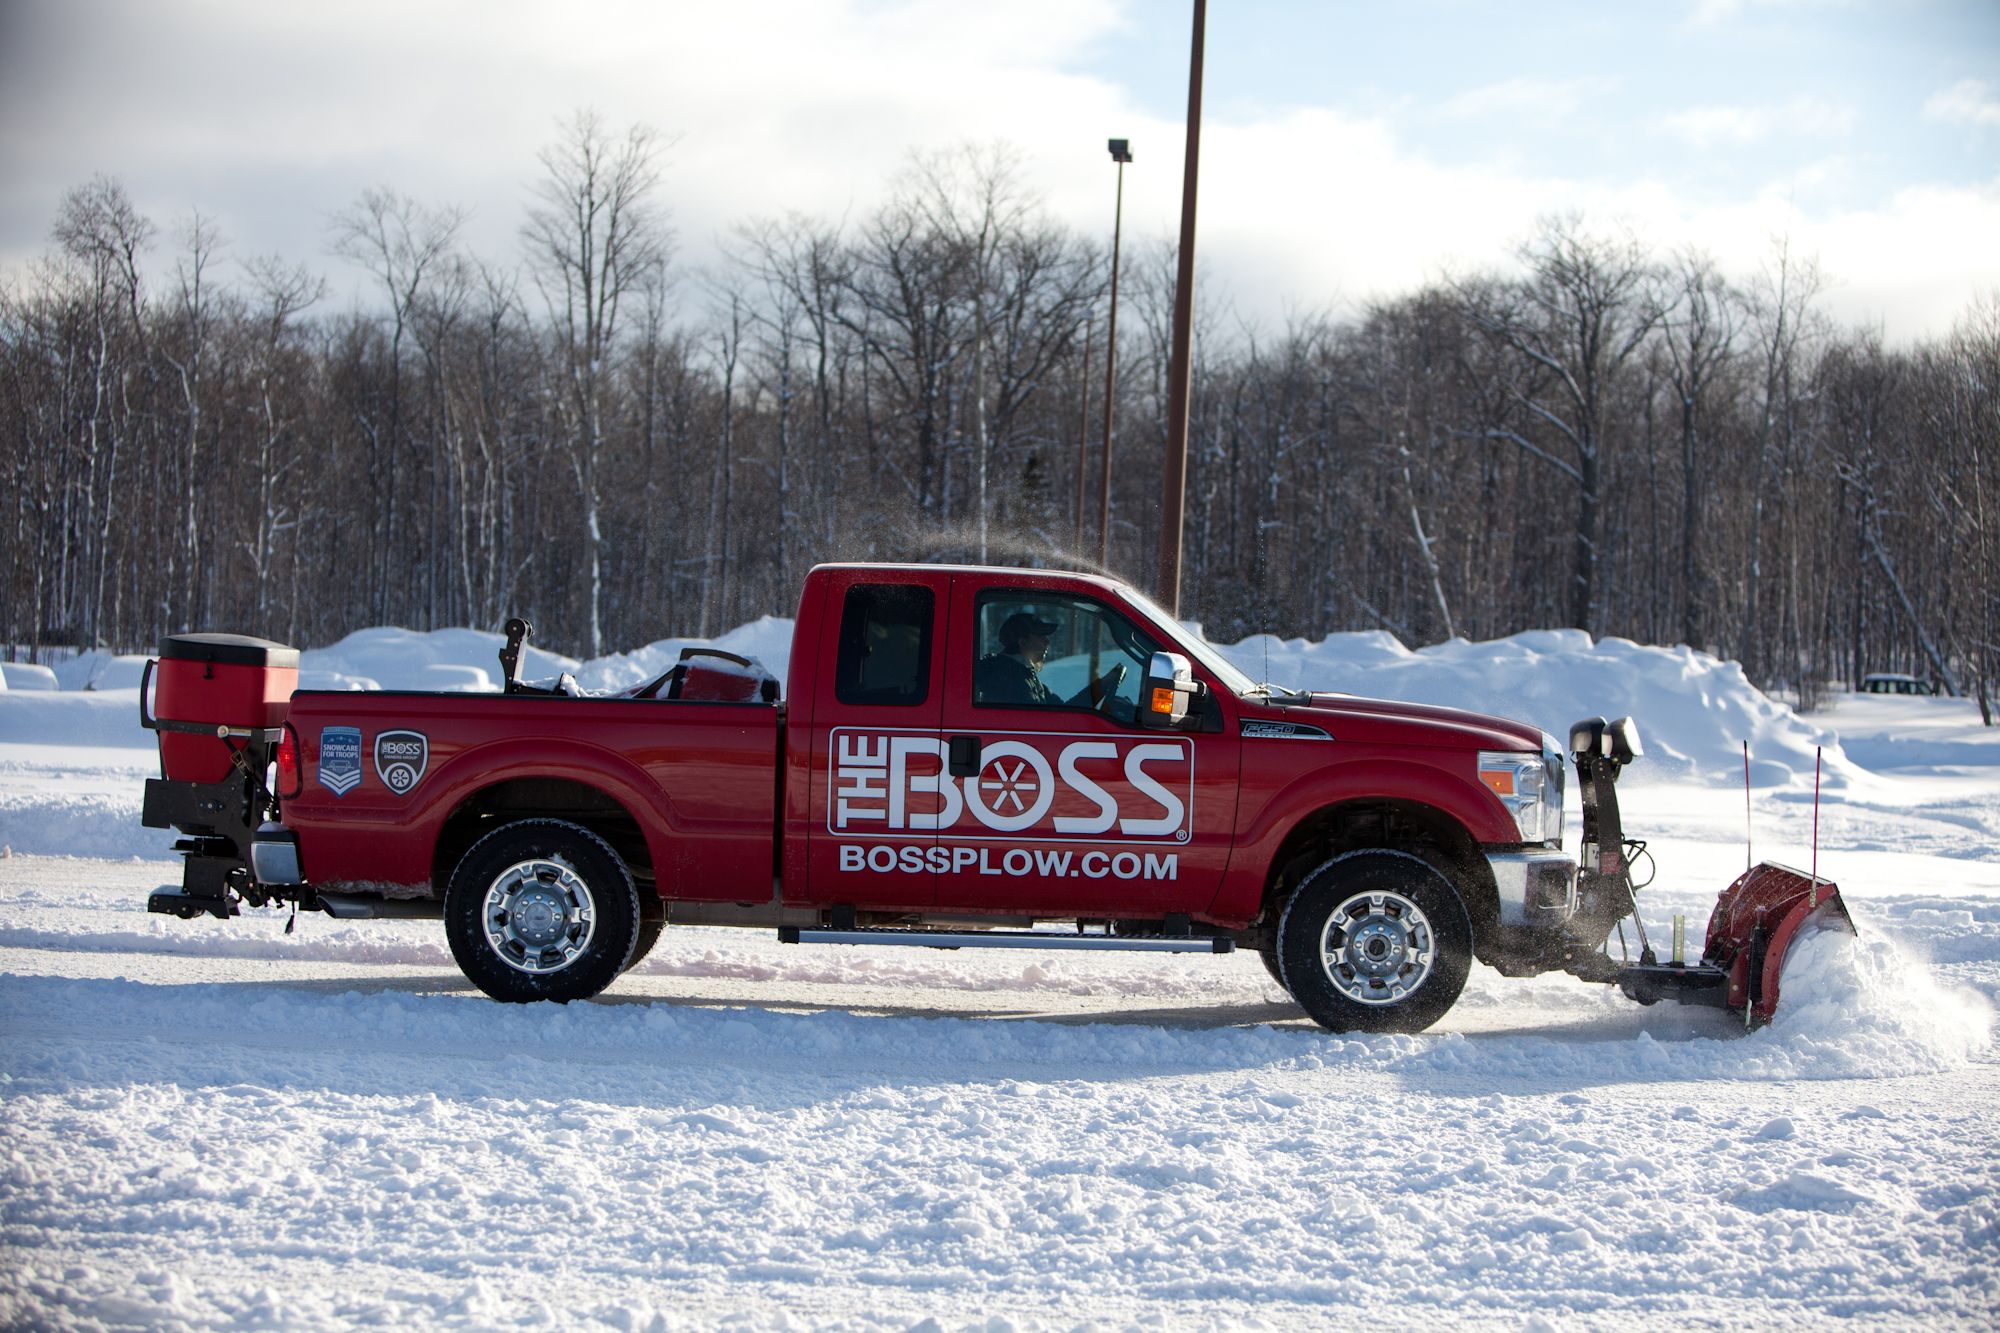 Boss Plow with Truck